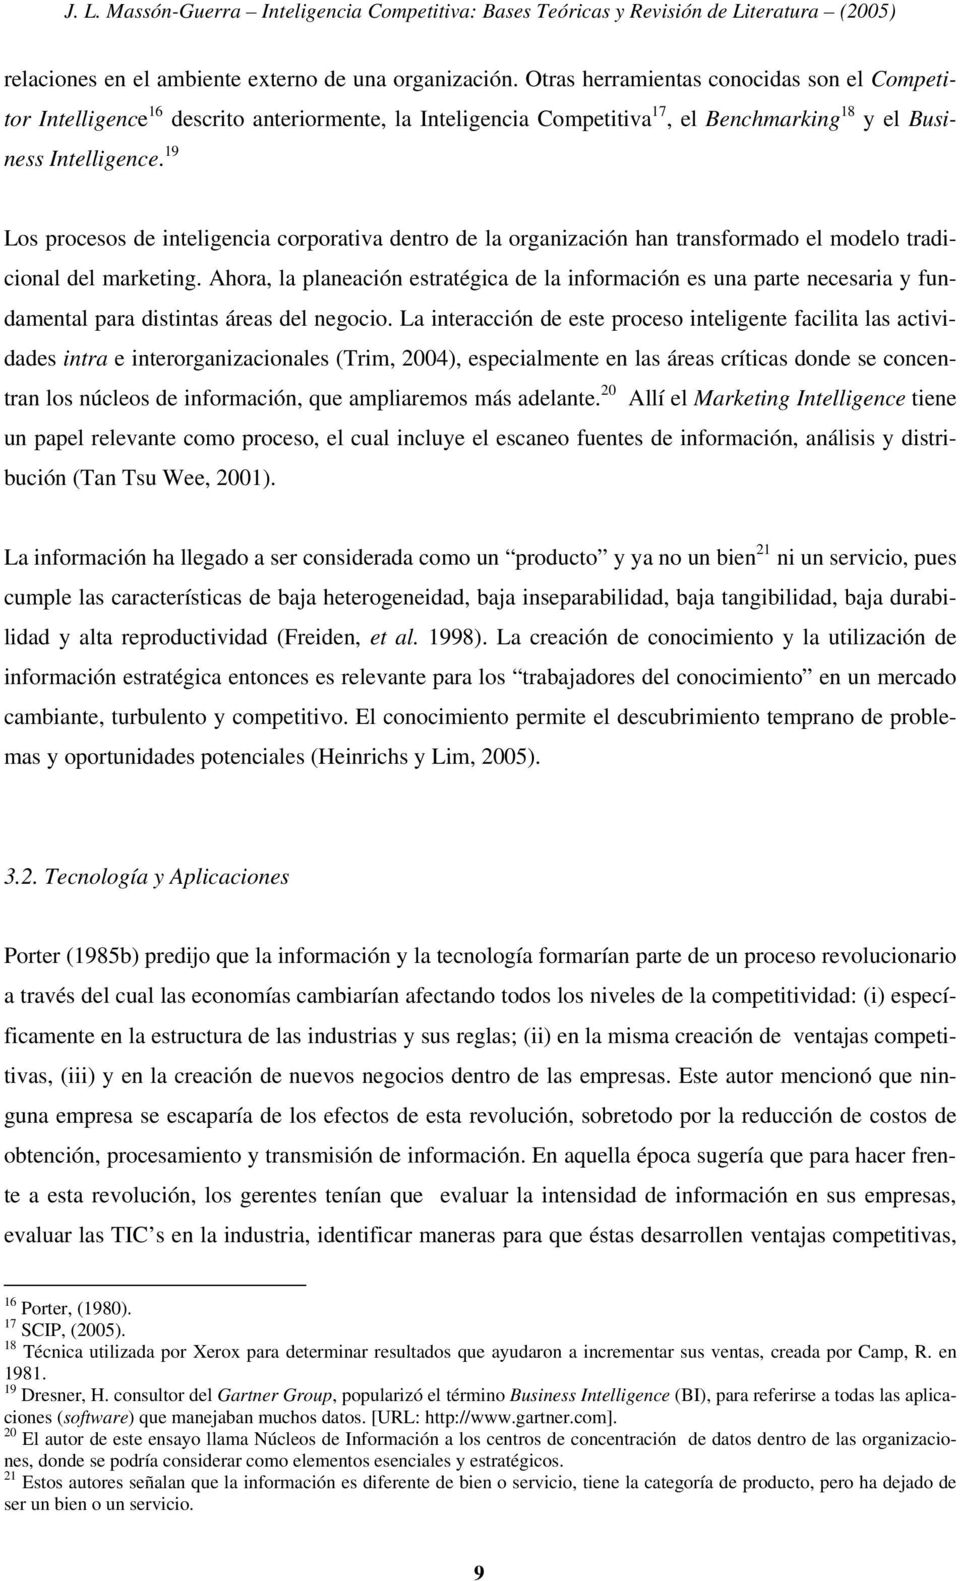 19 Los procesos de inteligencia corporativa dentro de la organización han transformado el modelo tradicional del marketing.